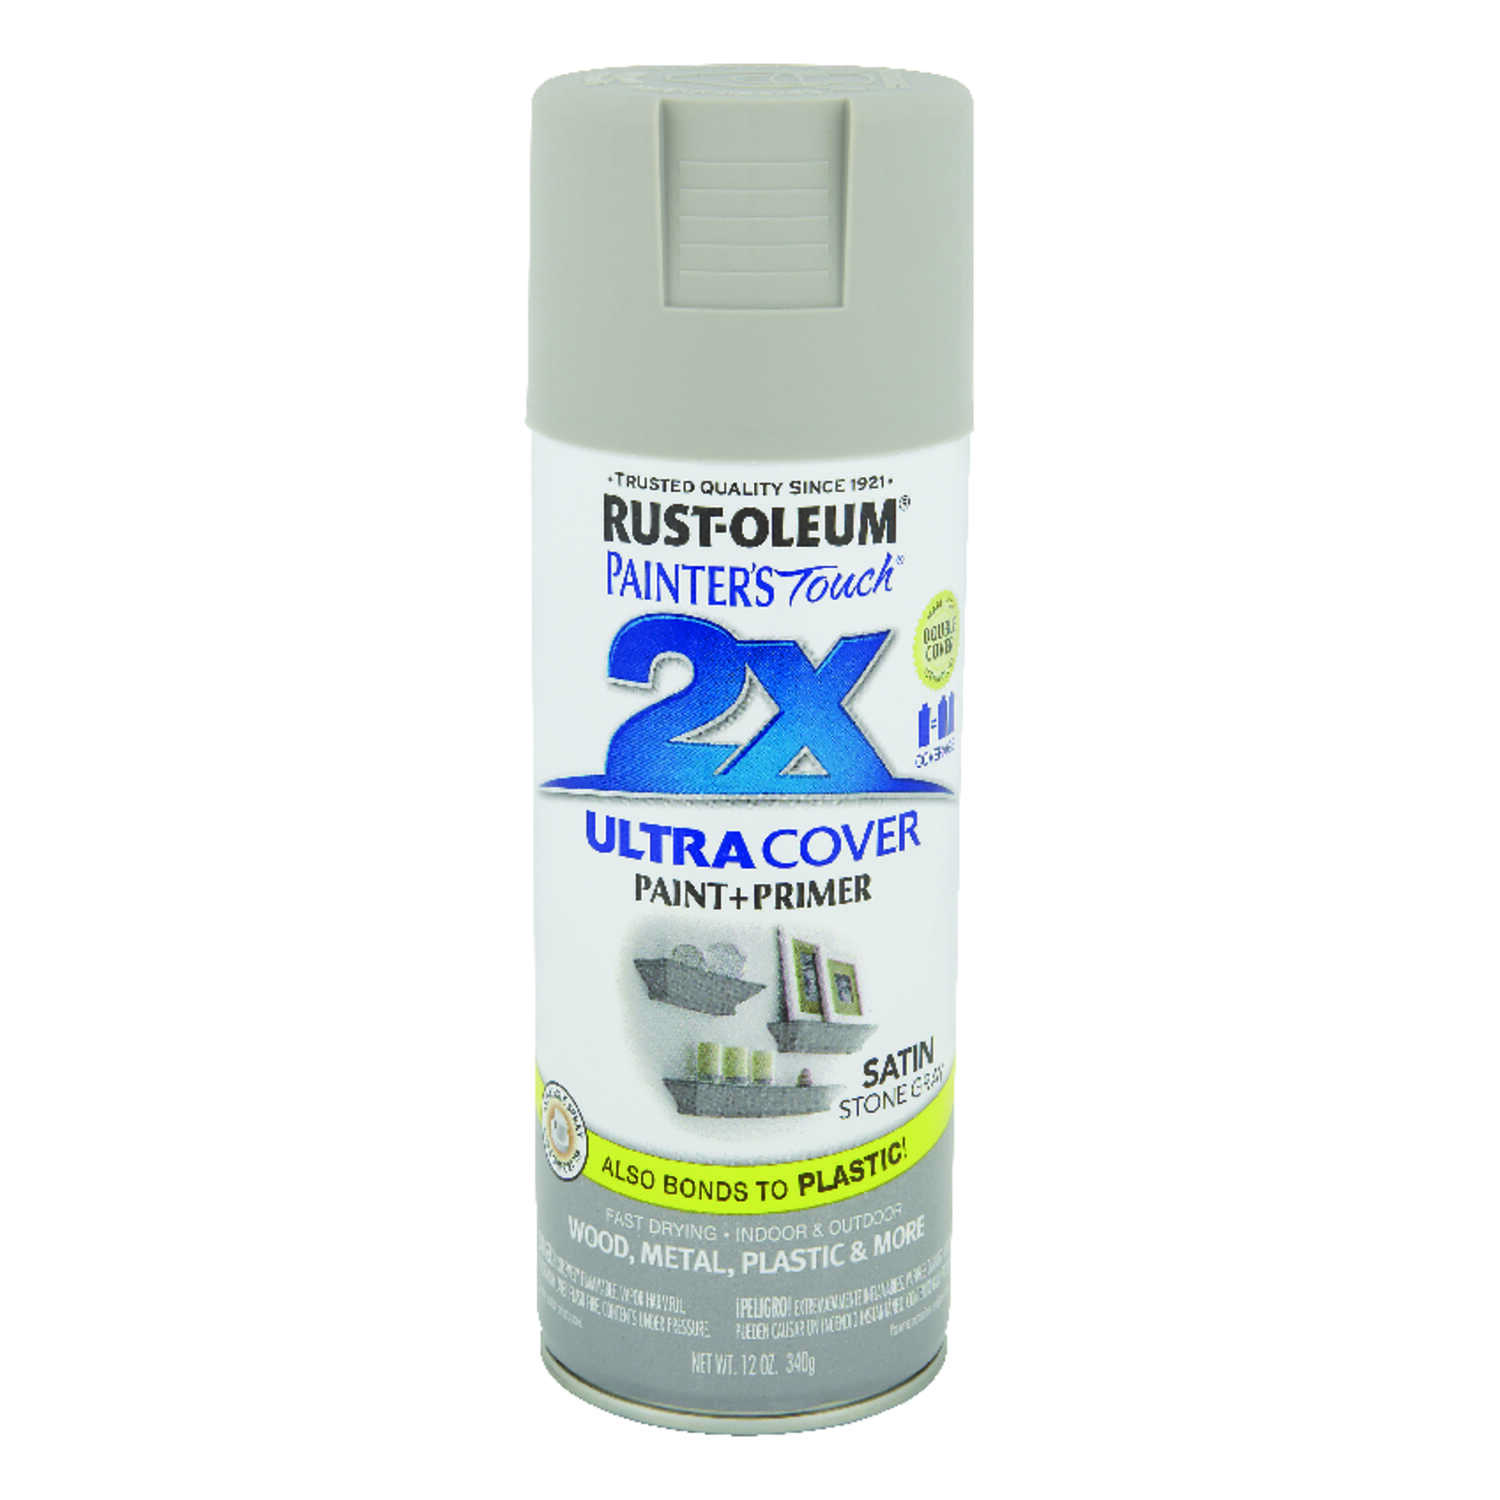 Rust-Oleum  Painter's Touch Ultra Cover  Satin  Stone Gray  Spray Paint  12 oz.